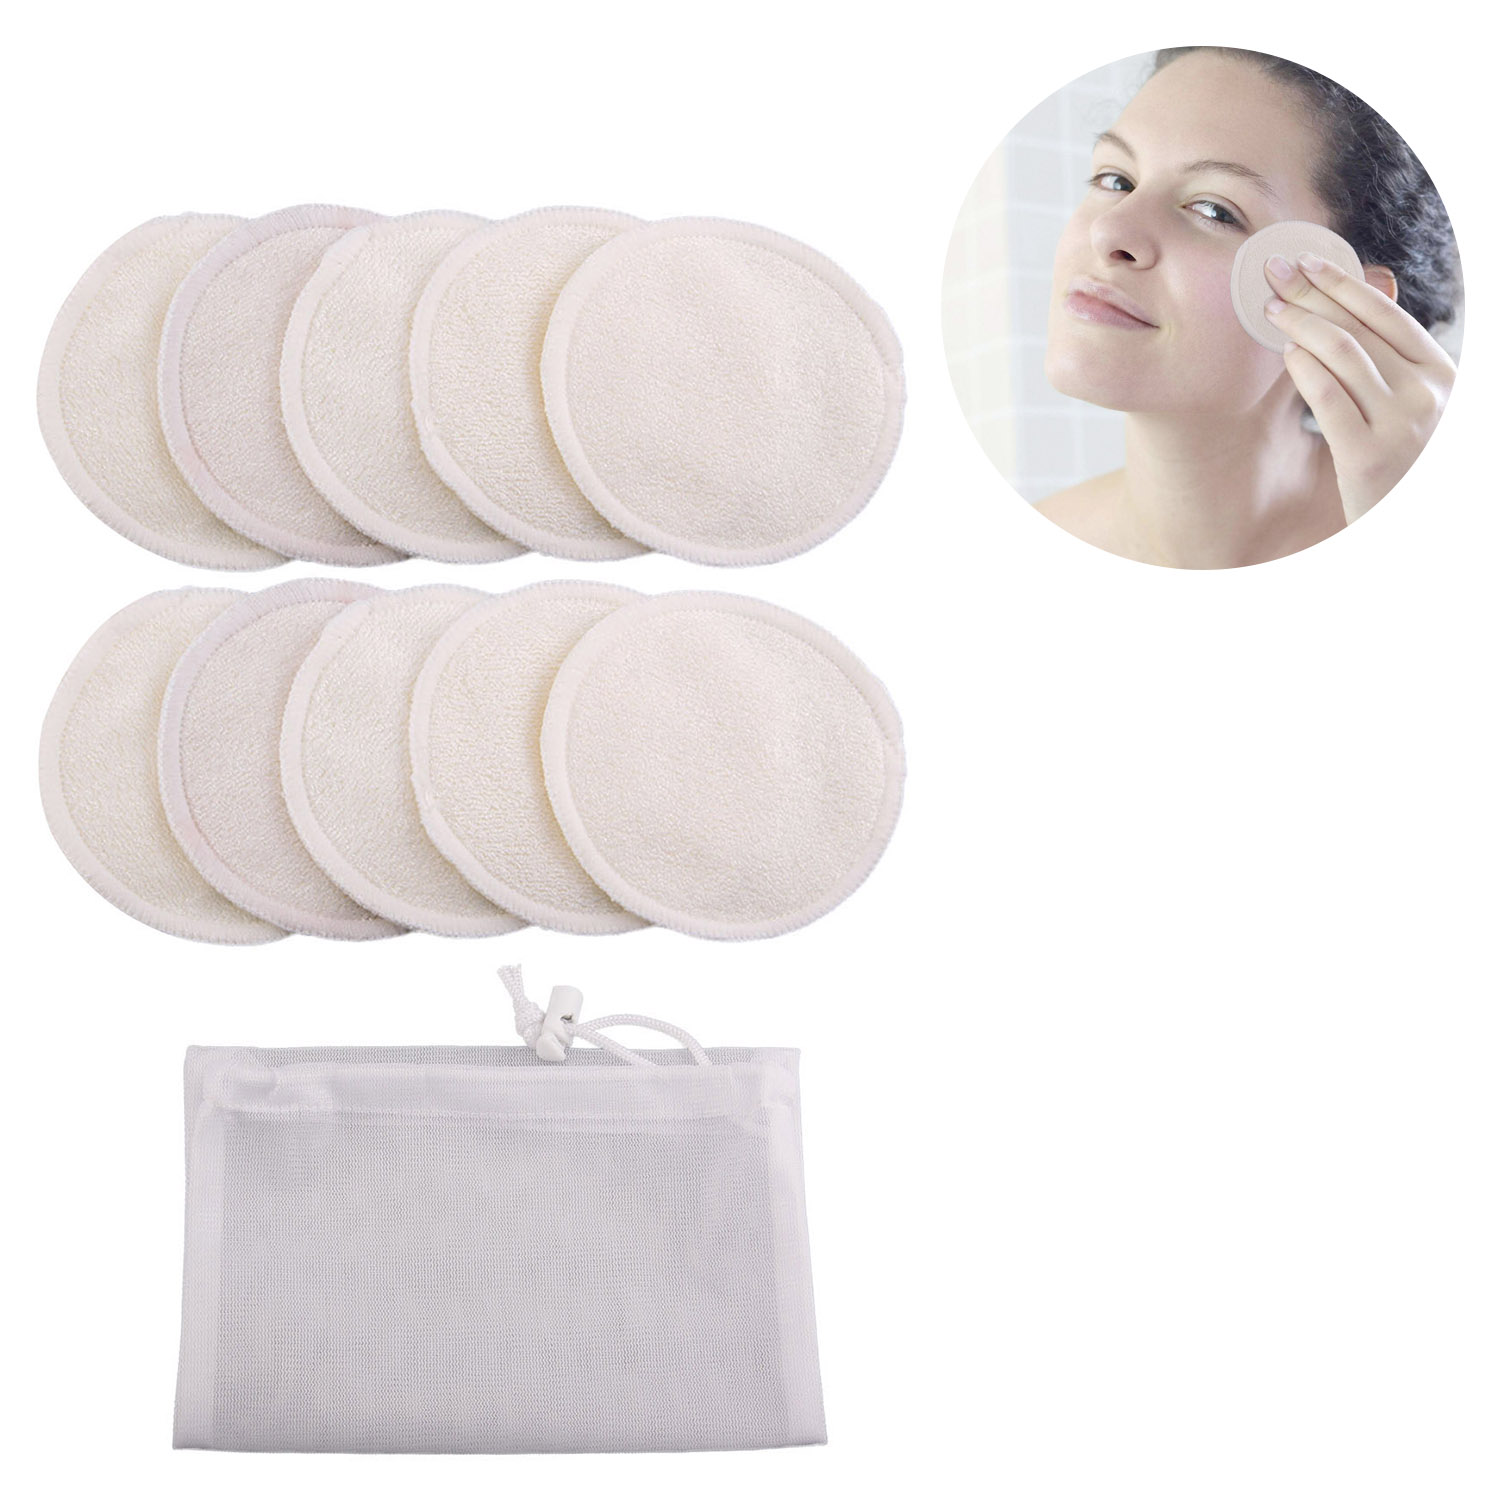 10 Pcs/set Reusable Washable Round Bamboo Makeup Remover Pads With Drawstring Storage Bag 8cm 3.15 Inch Washable Cleaning Pads